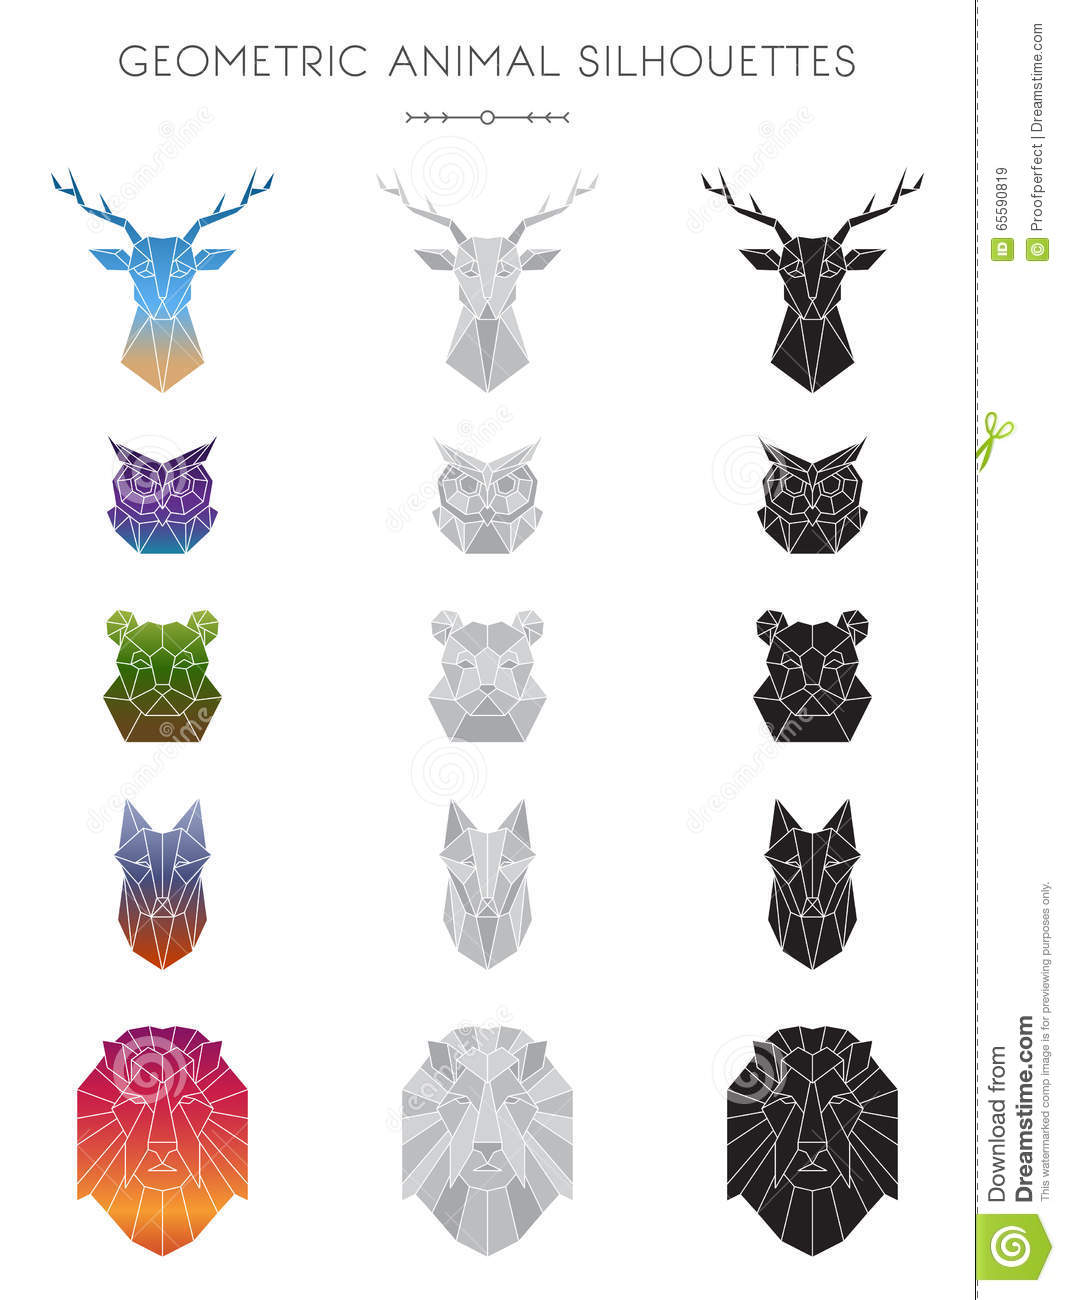 Silhouettes of 5 animal heads: deer, owl, bear, fox, and lion ...